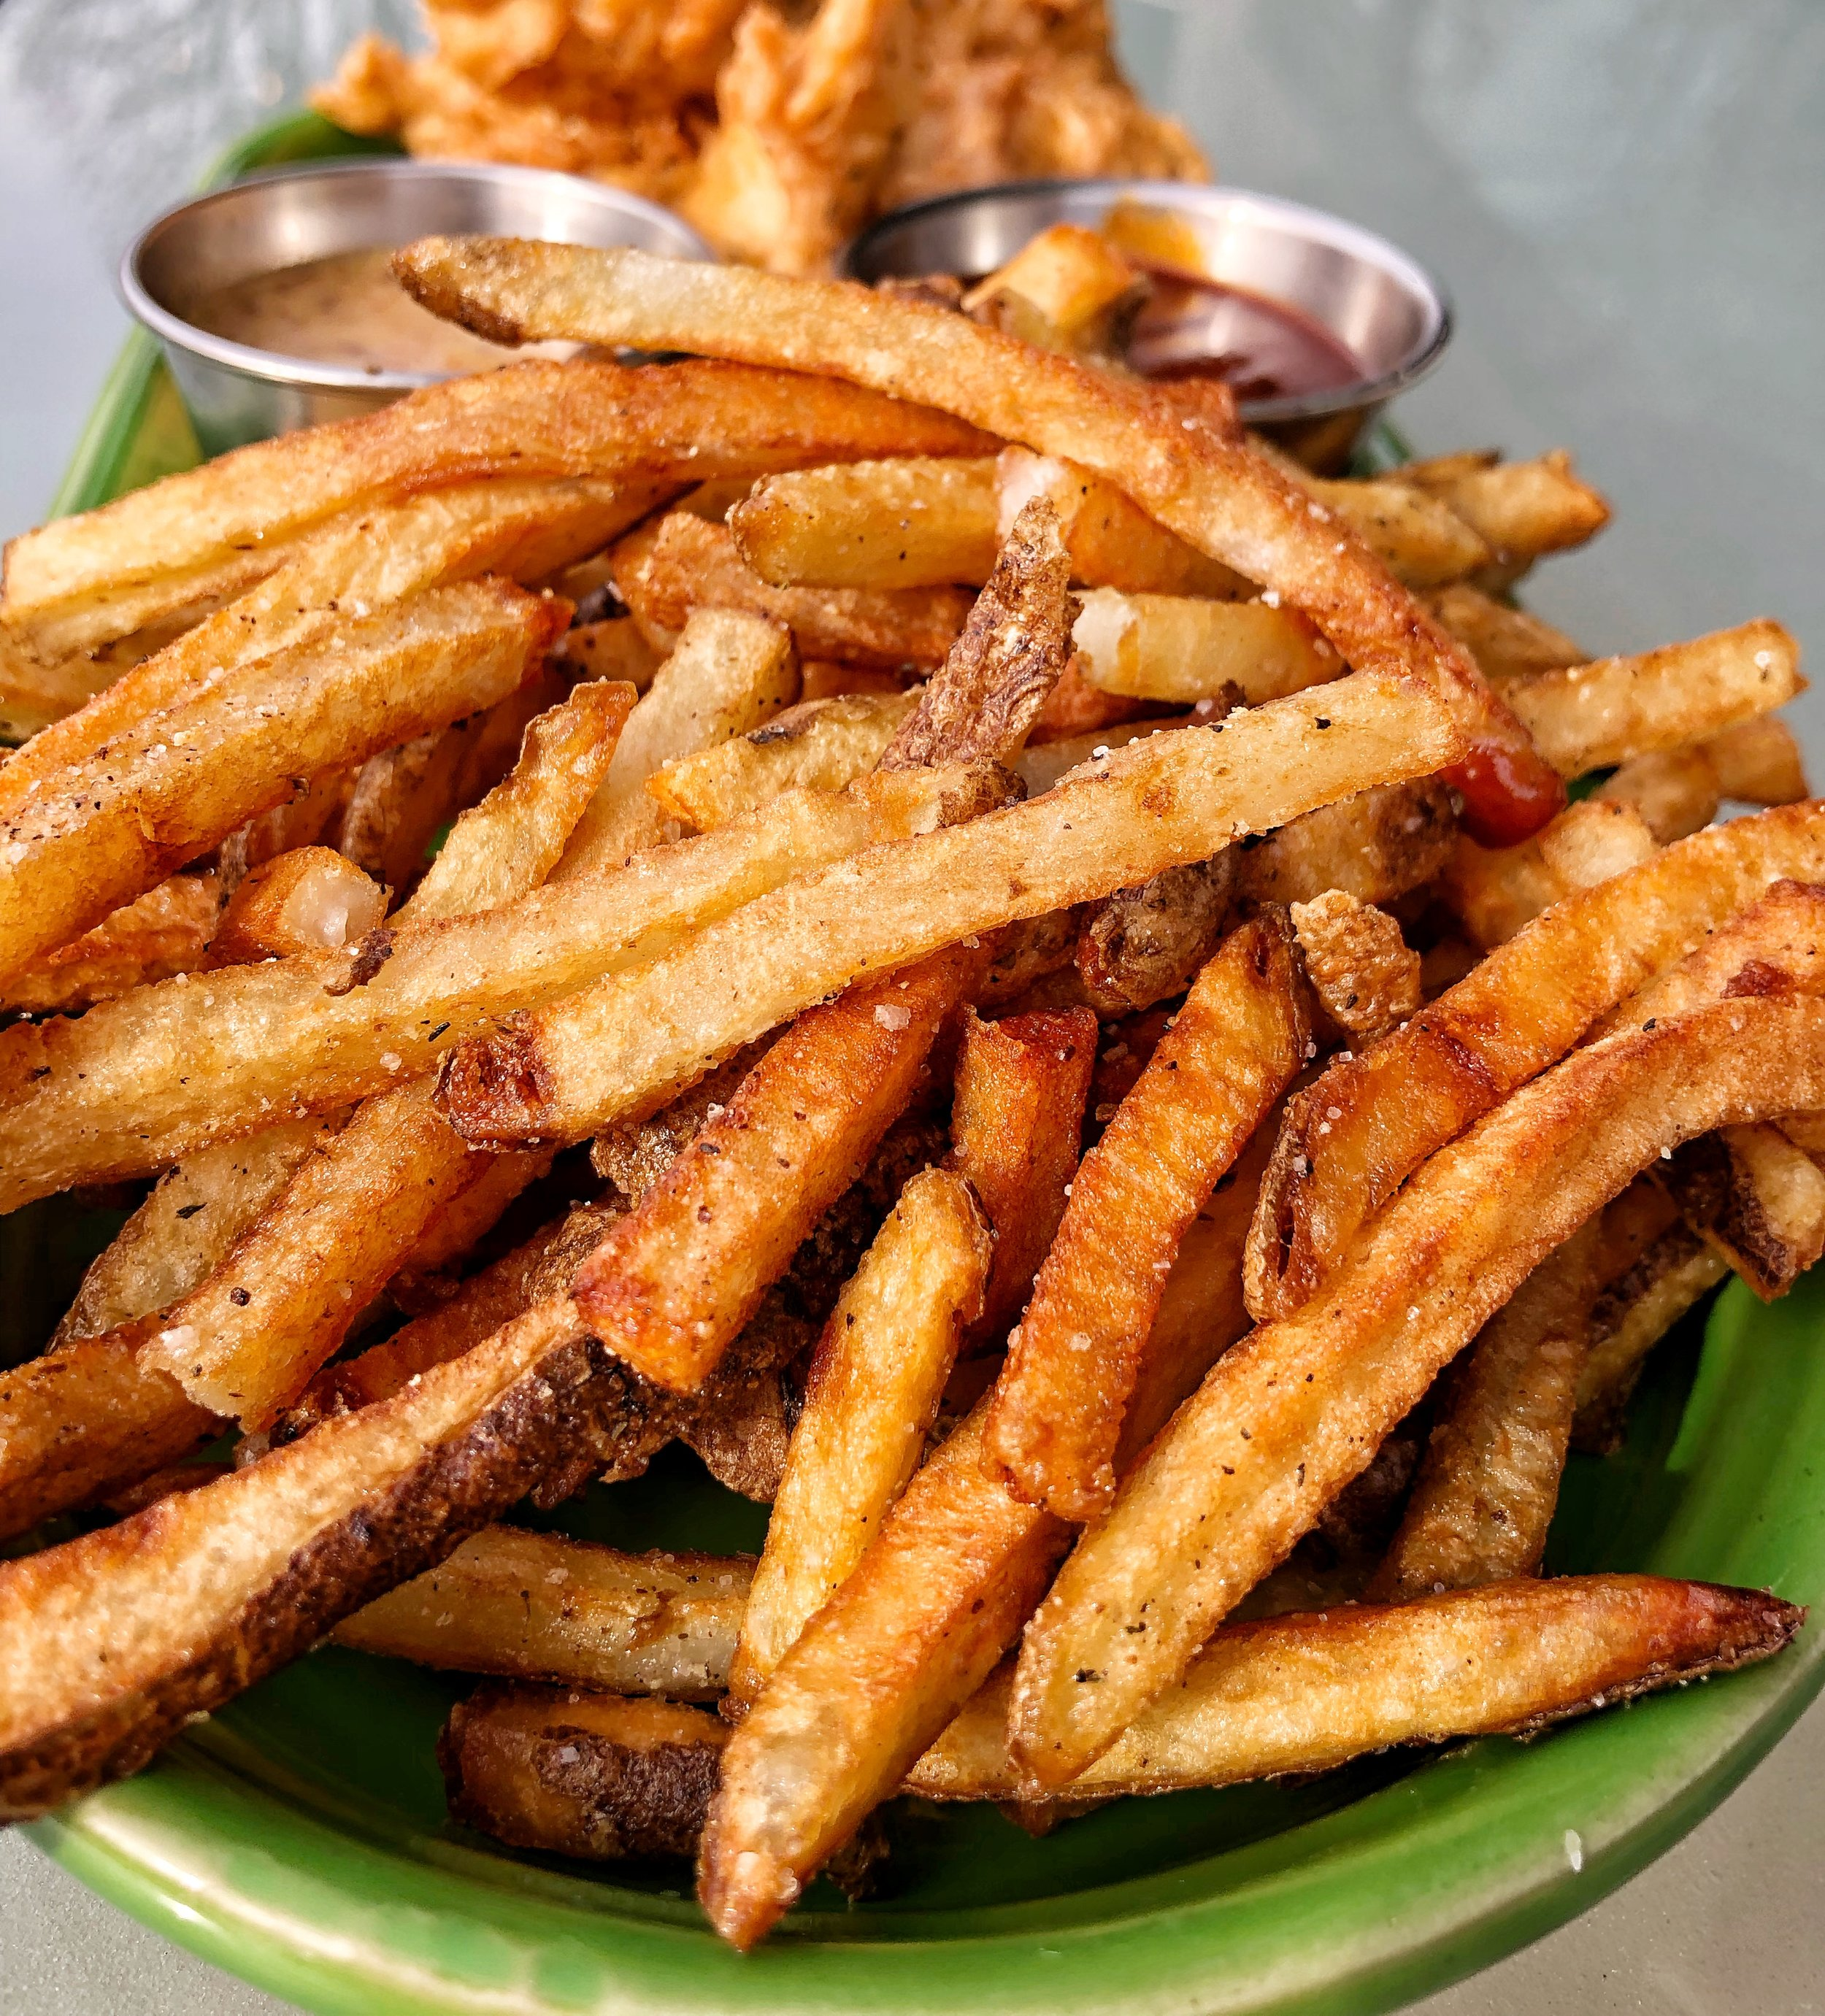 House-Cut Fries - These fries take two days to make. They are cut in house, brined, and then fried up to absolute perfection. That golden-brown color isn't fry face tune, it's just the mark of a potato treated right. Don't expect to be able to share these with anyone.